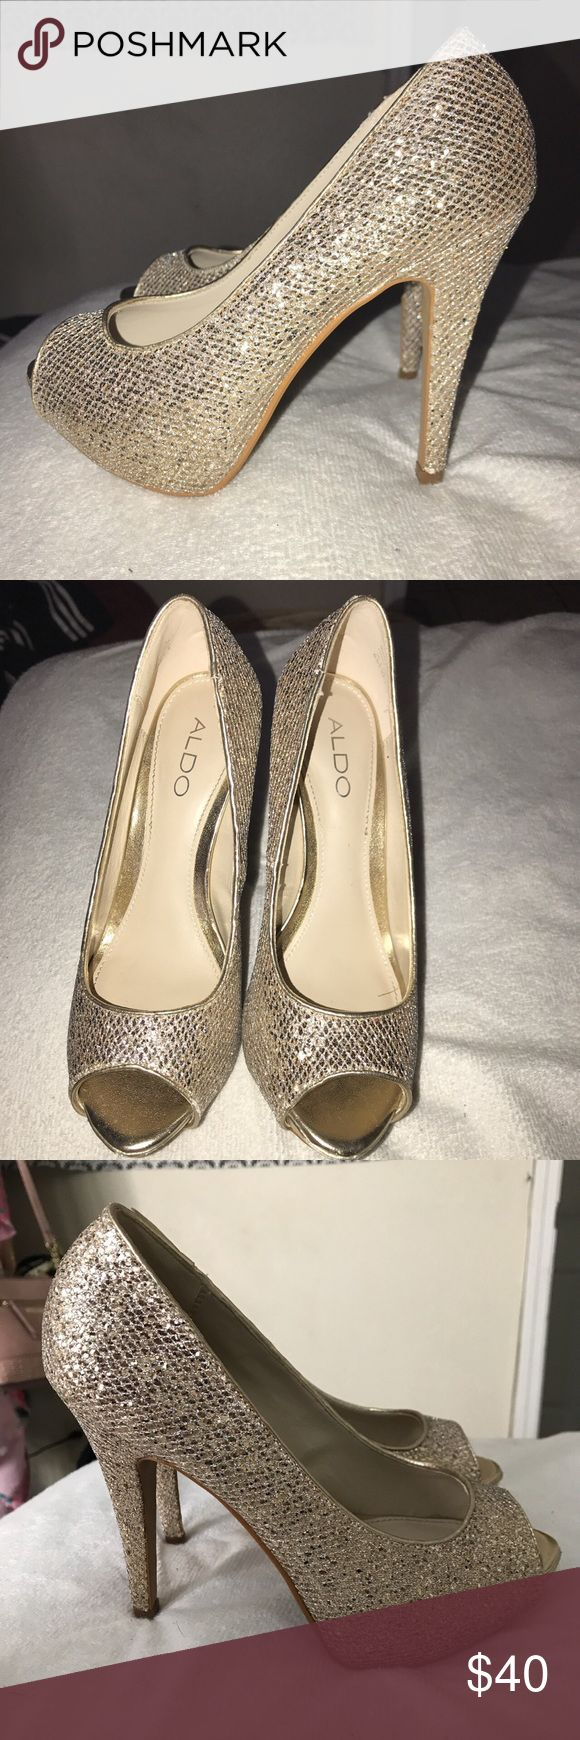 Sparkly heels from Aldo. Gold/silver sparkly heels from Aldo. Worn once on prom night Aldo Shoes Heels